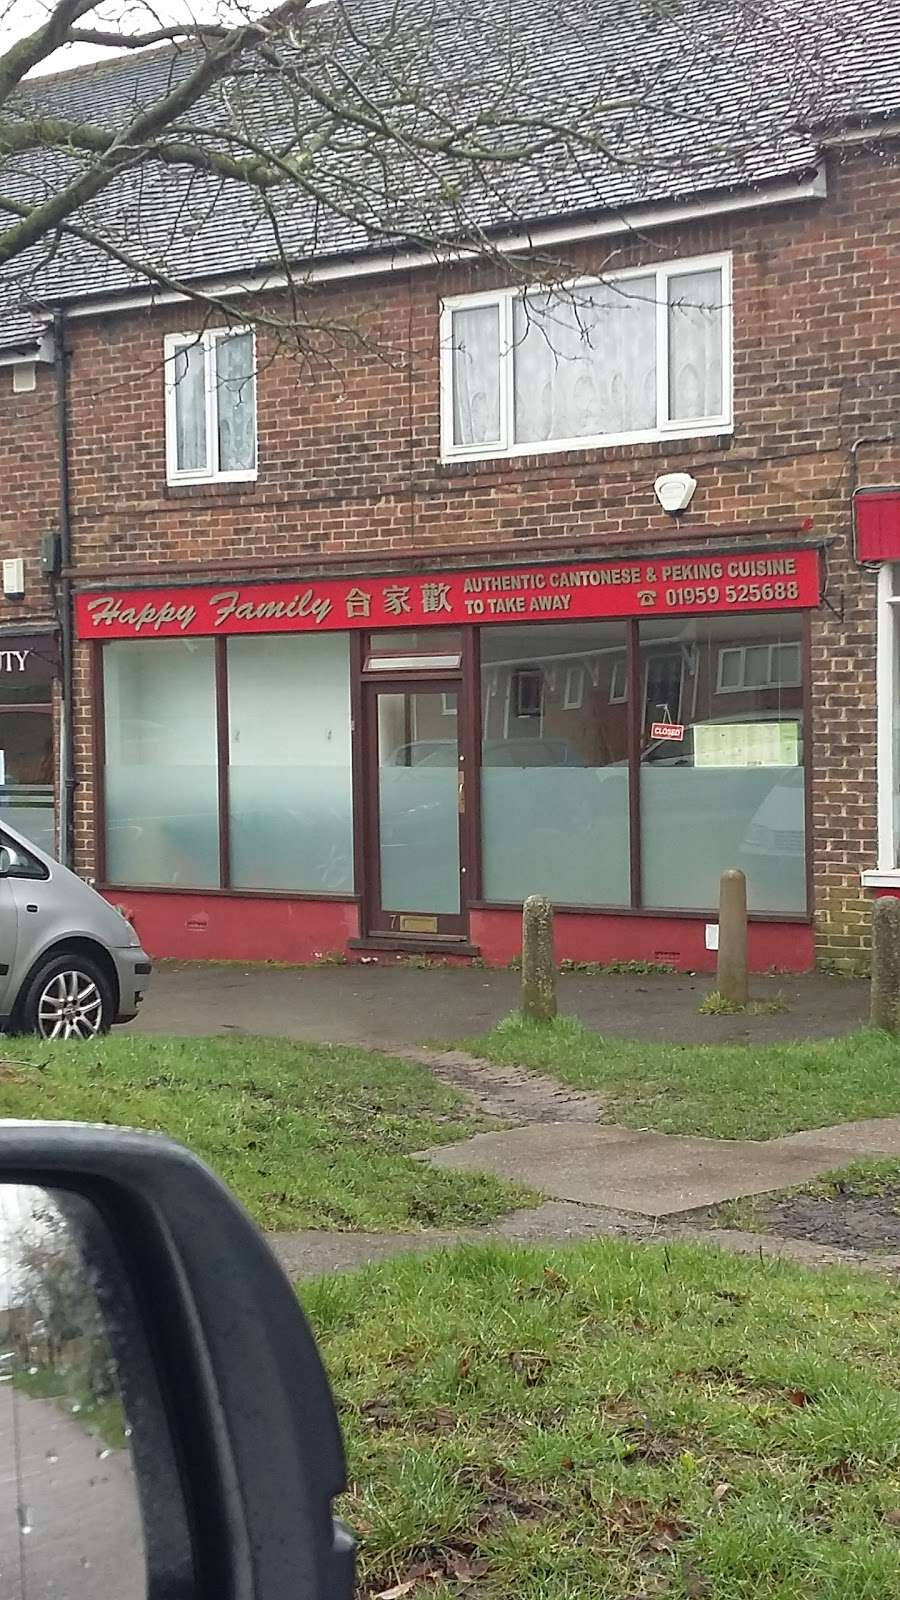 Happy Family Chinese Takeaway - meal takeaway  | Photo 1 of 2 | Address: The Parade, Dynes Rd, Kemsing, Sevenoaks TN15 6RE, UK | Phone: 01959 525688